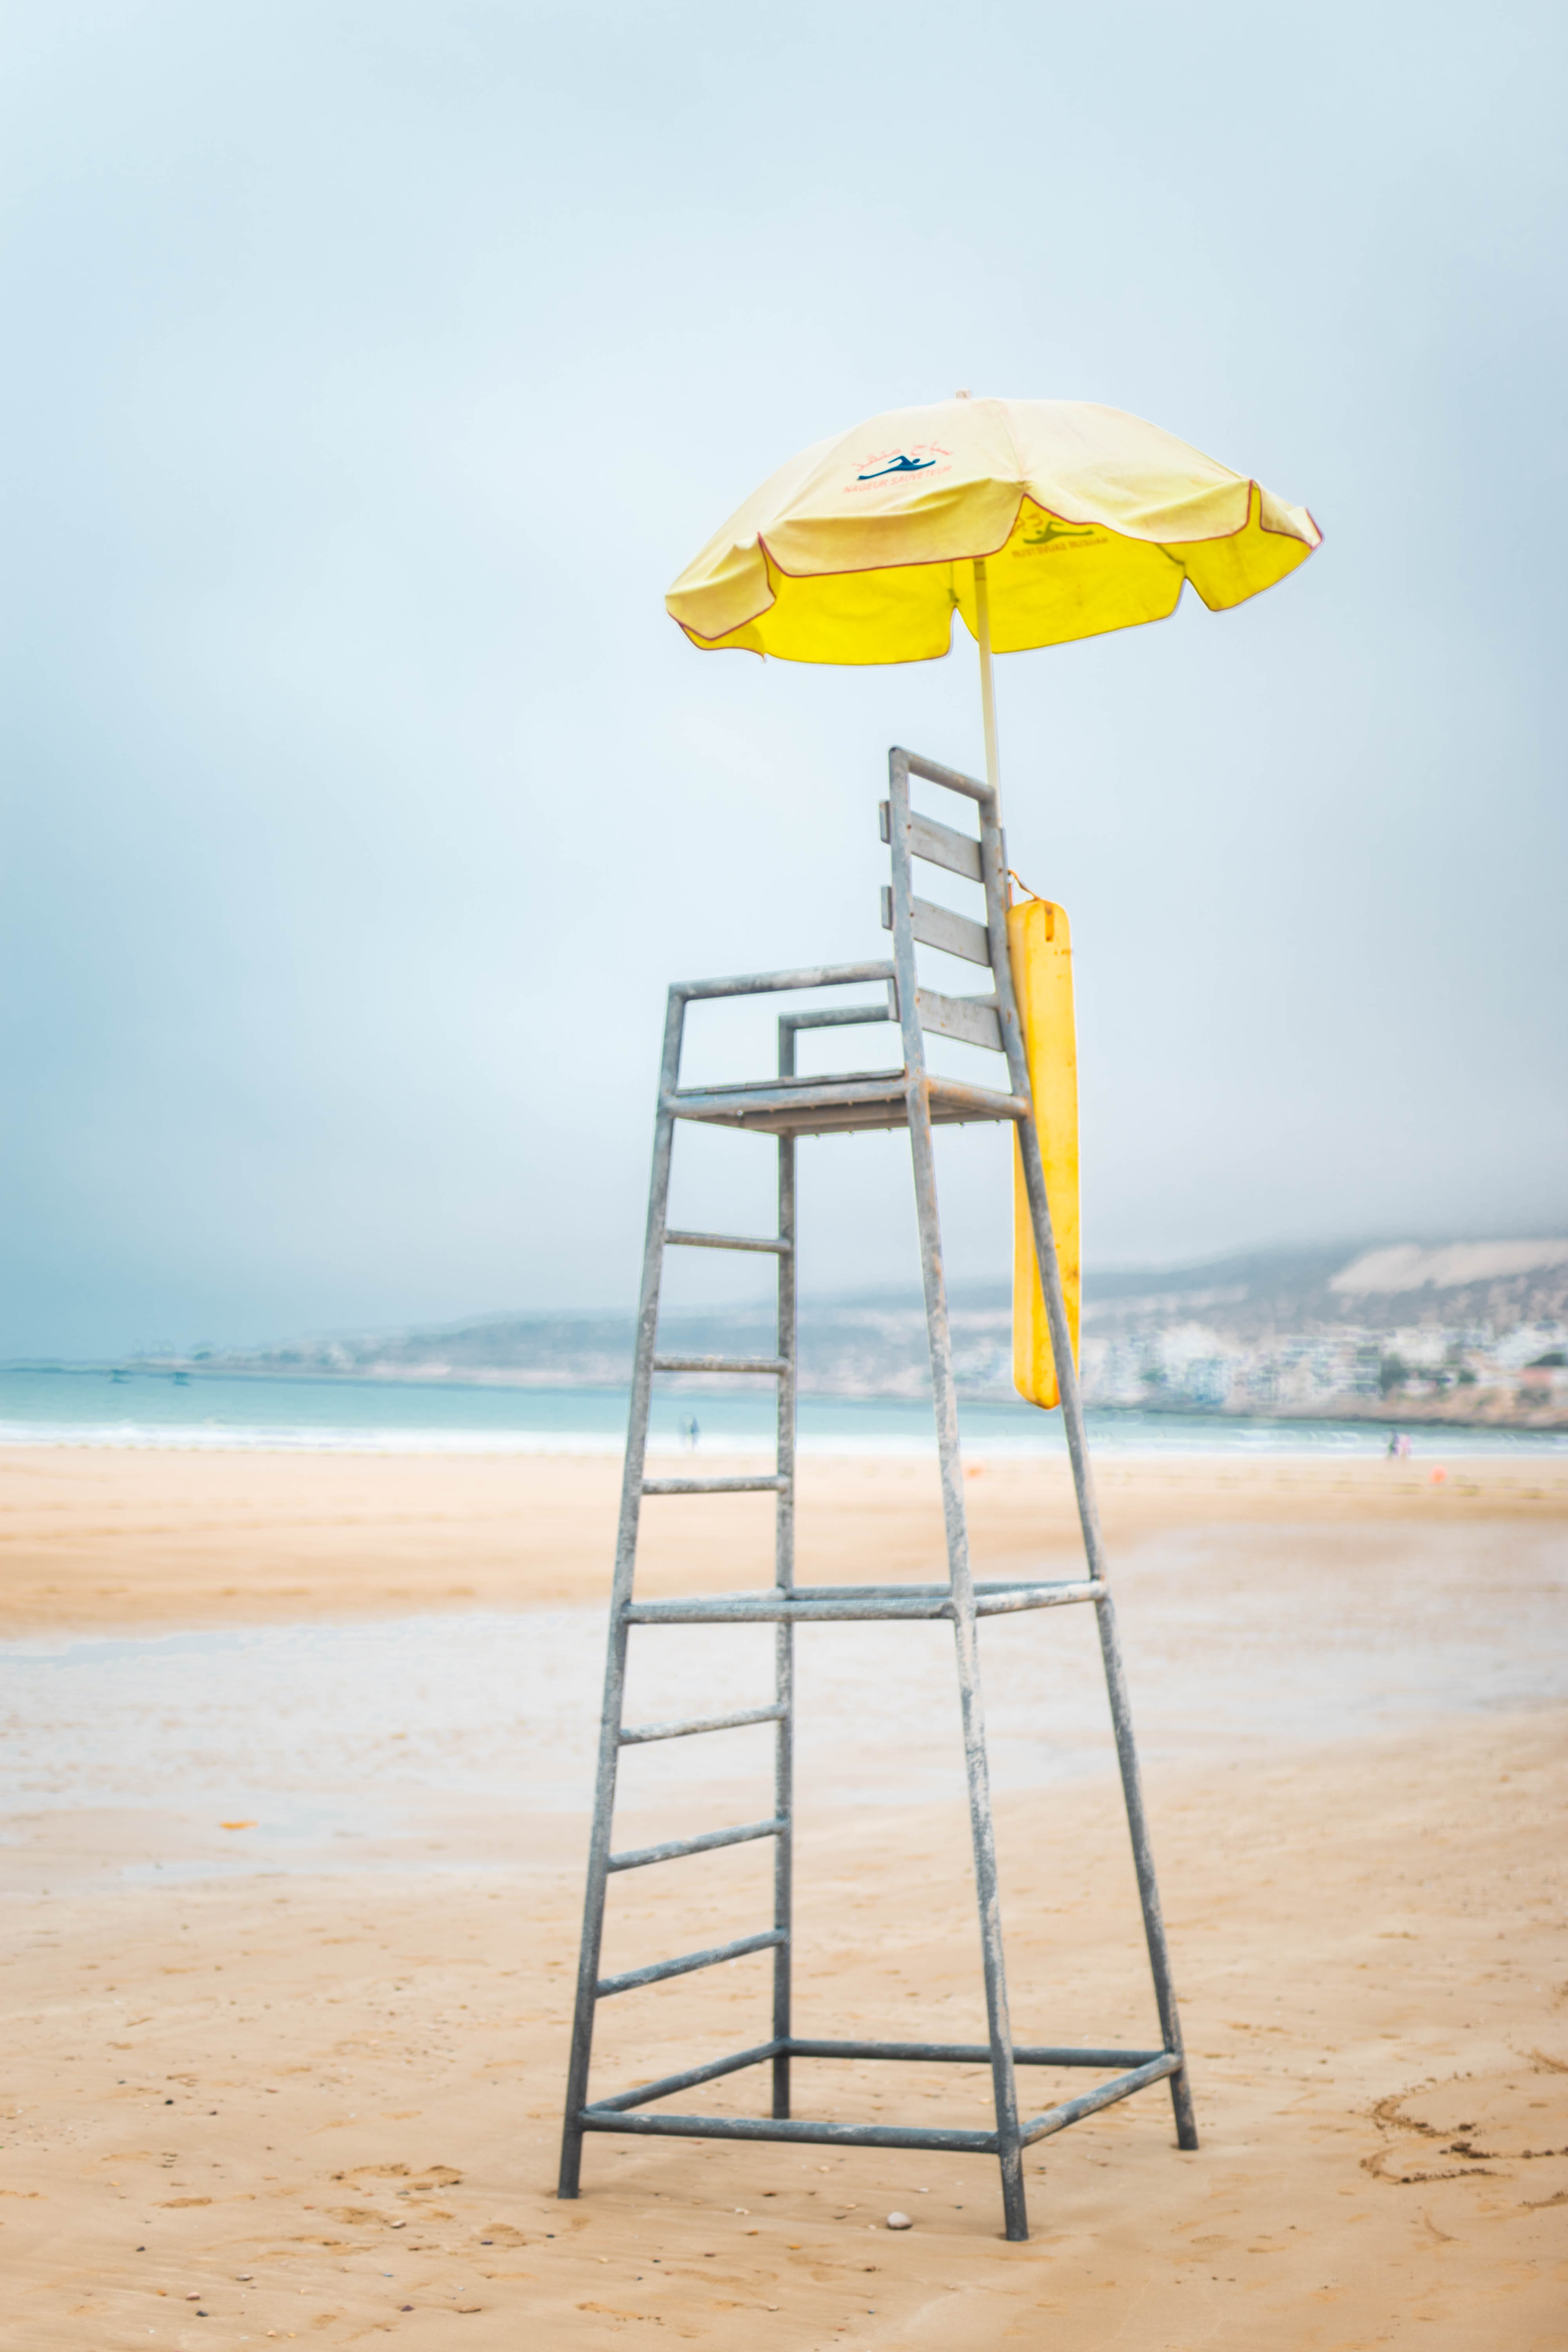 gray and brown lifeguard chair near body of water